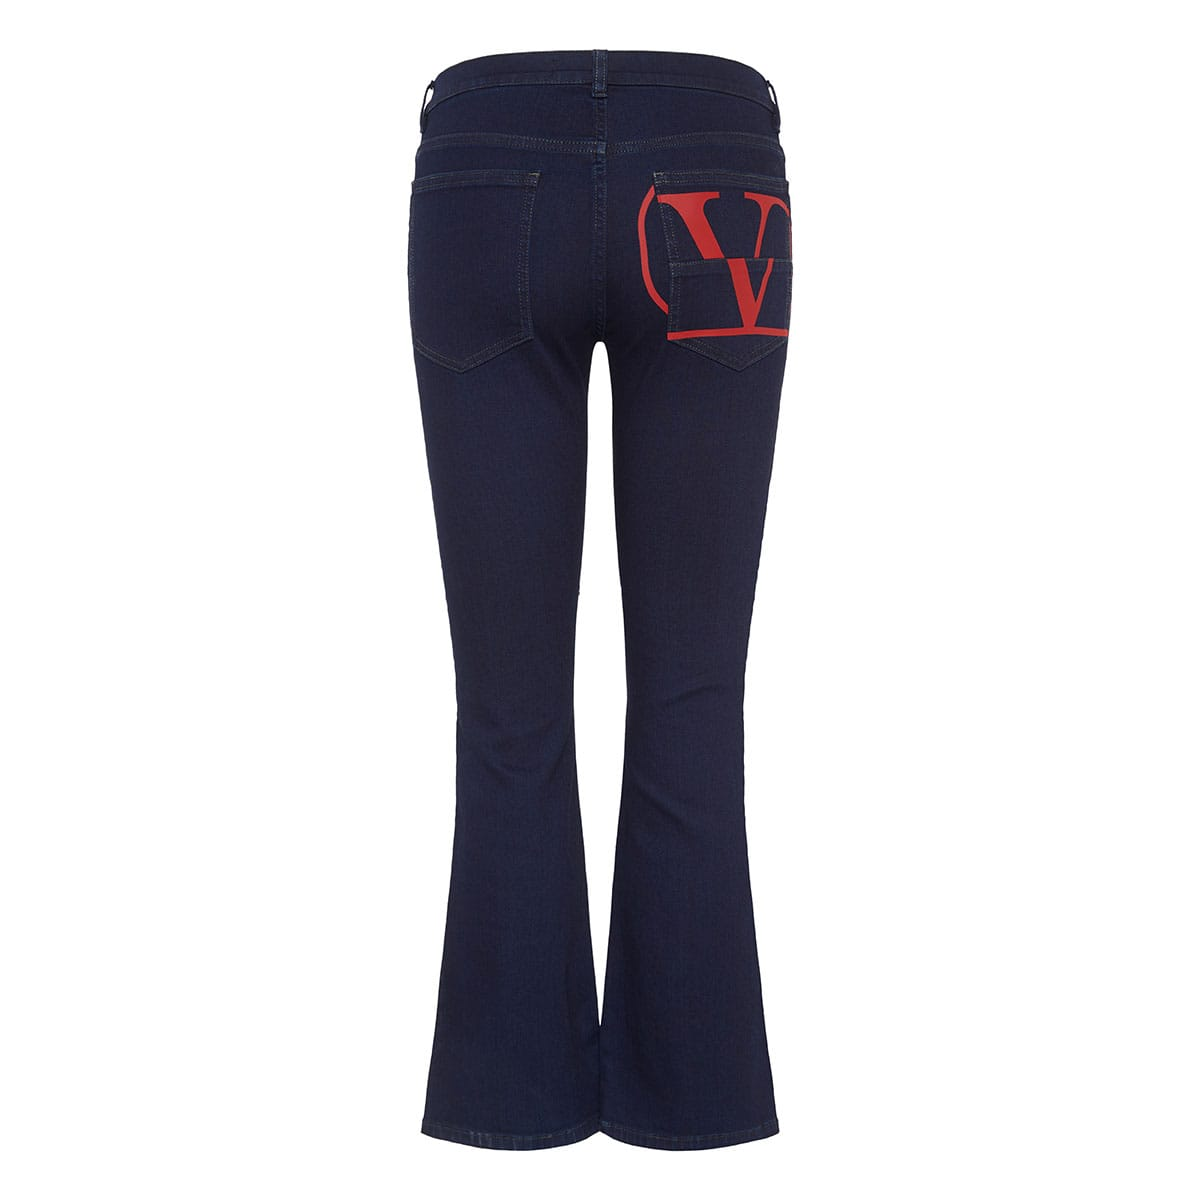 Vlogo cropped flared jeans